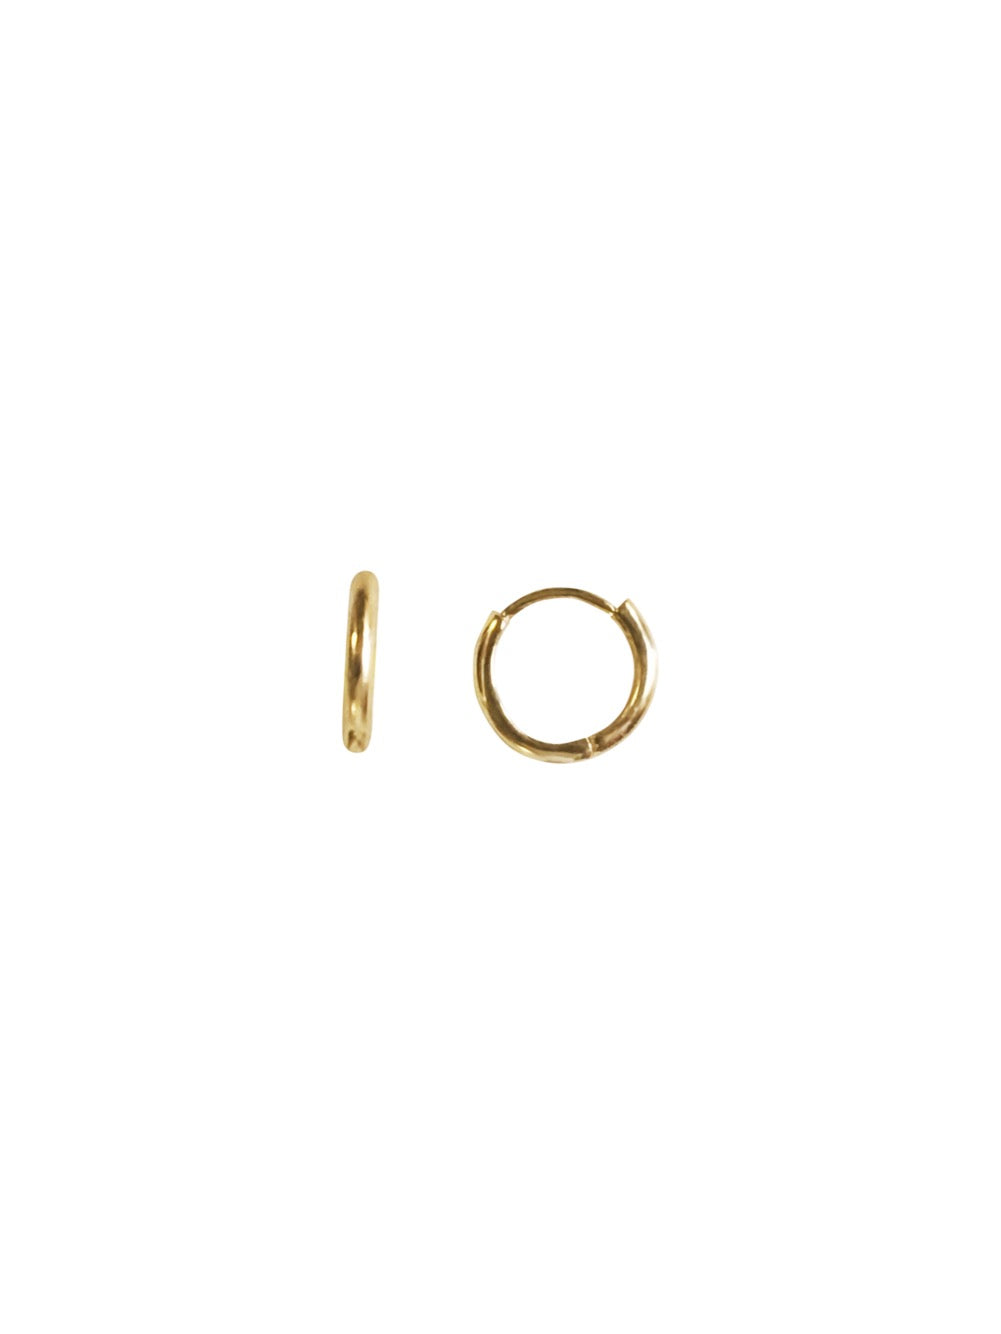 14KT Gold Mini Huggie Clicker Earring